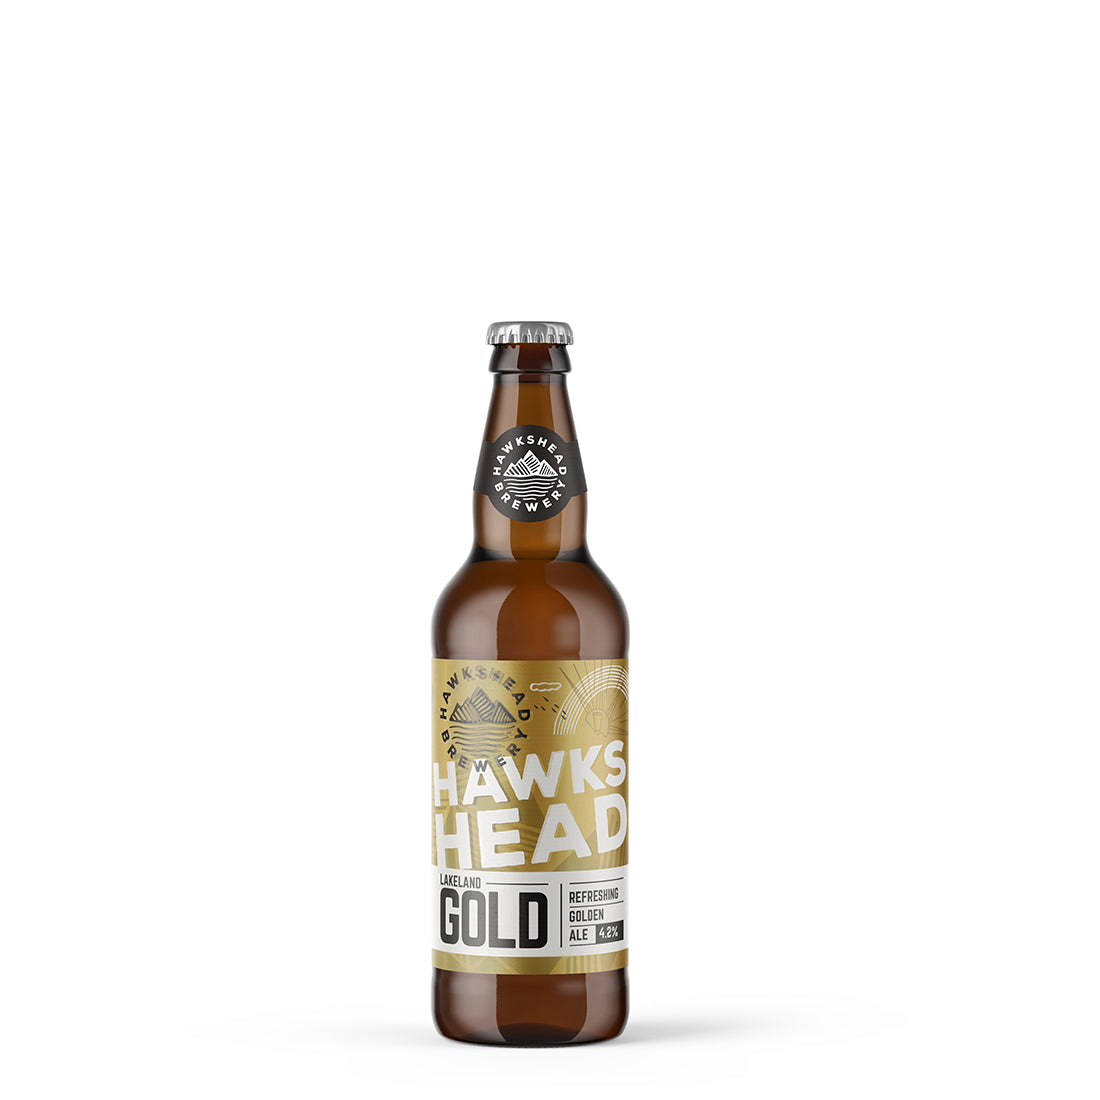 Hawkshead Brewery Lakeland Gold 8x500ml Bottles